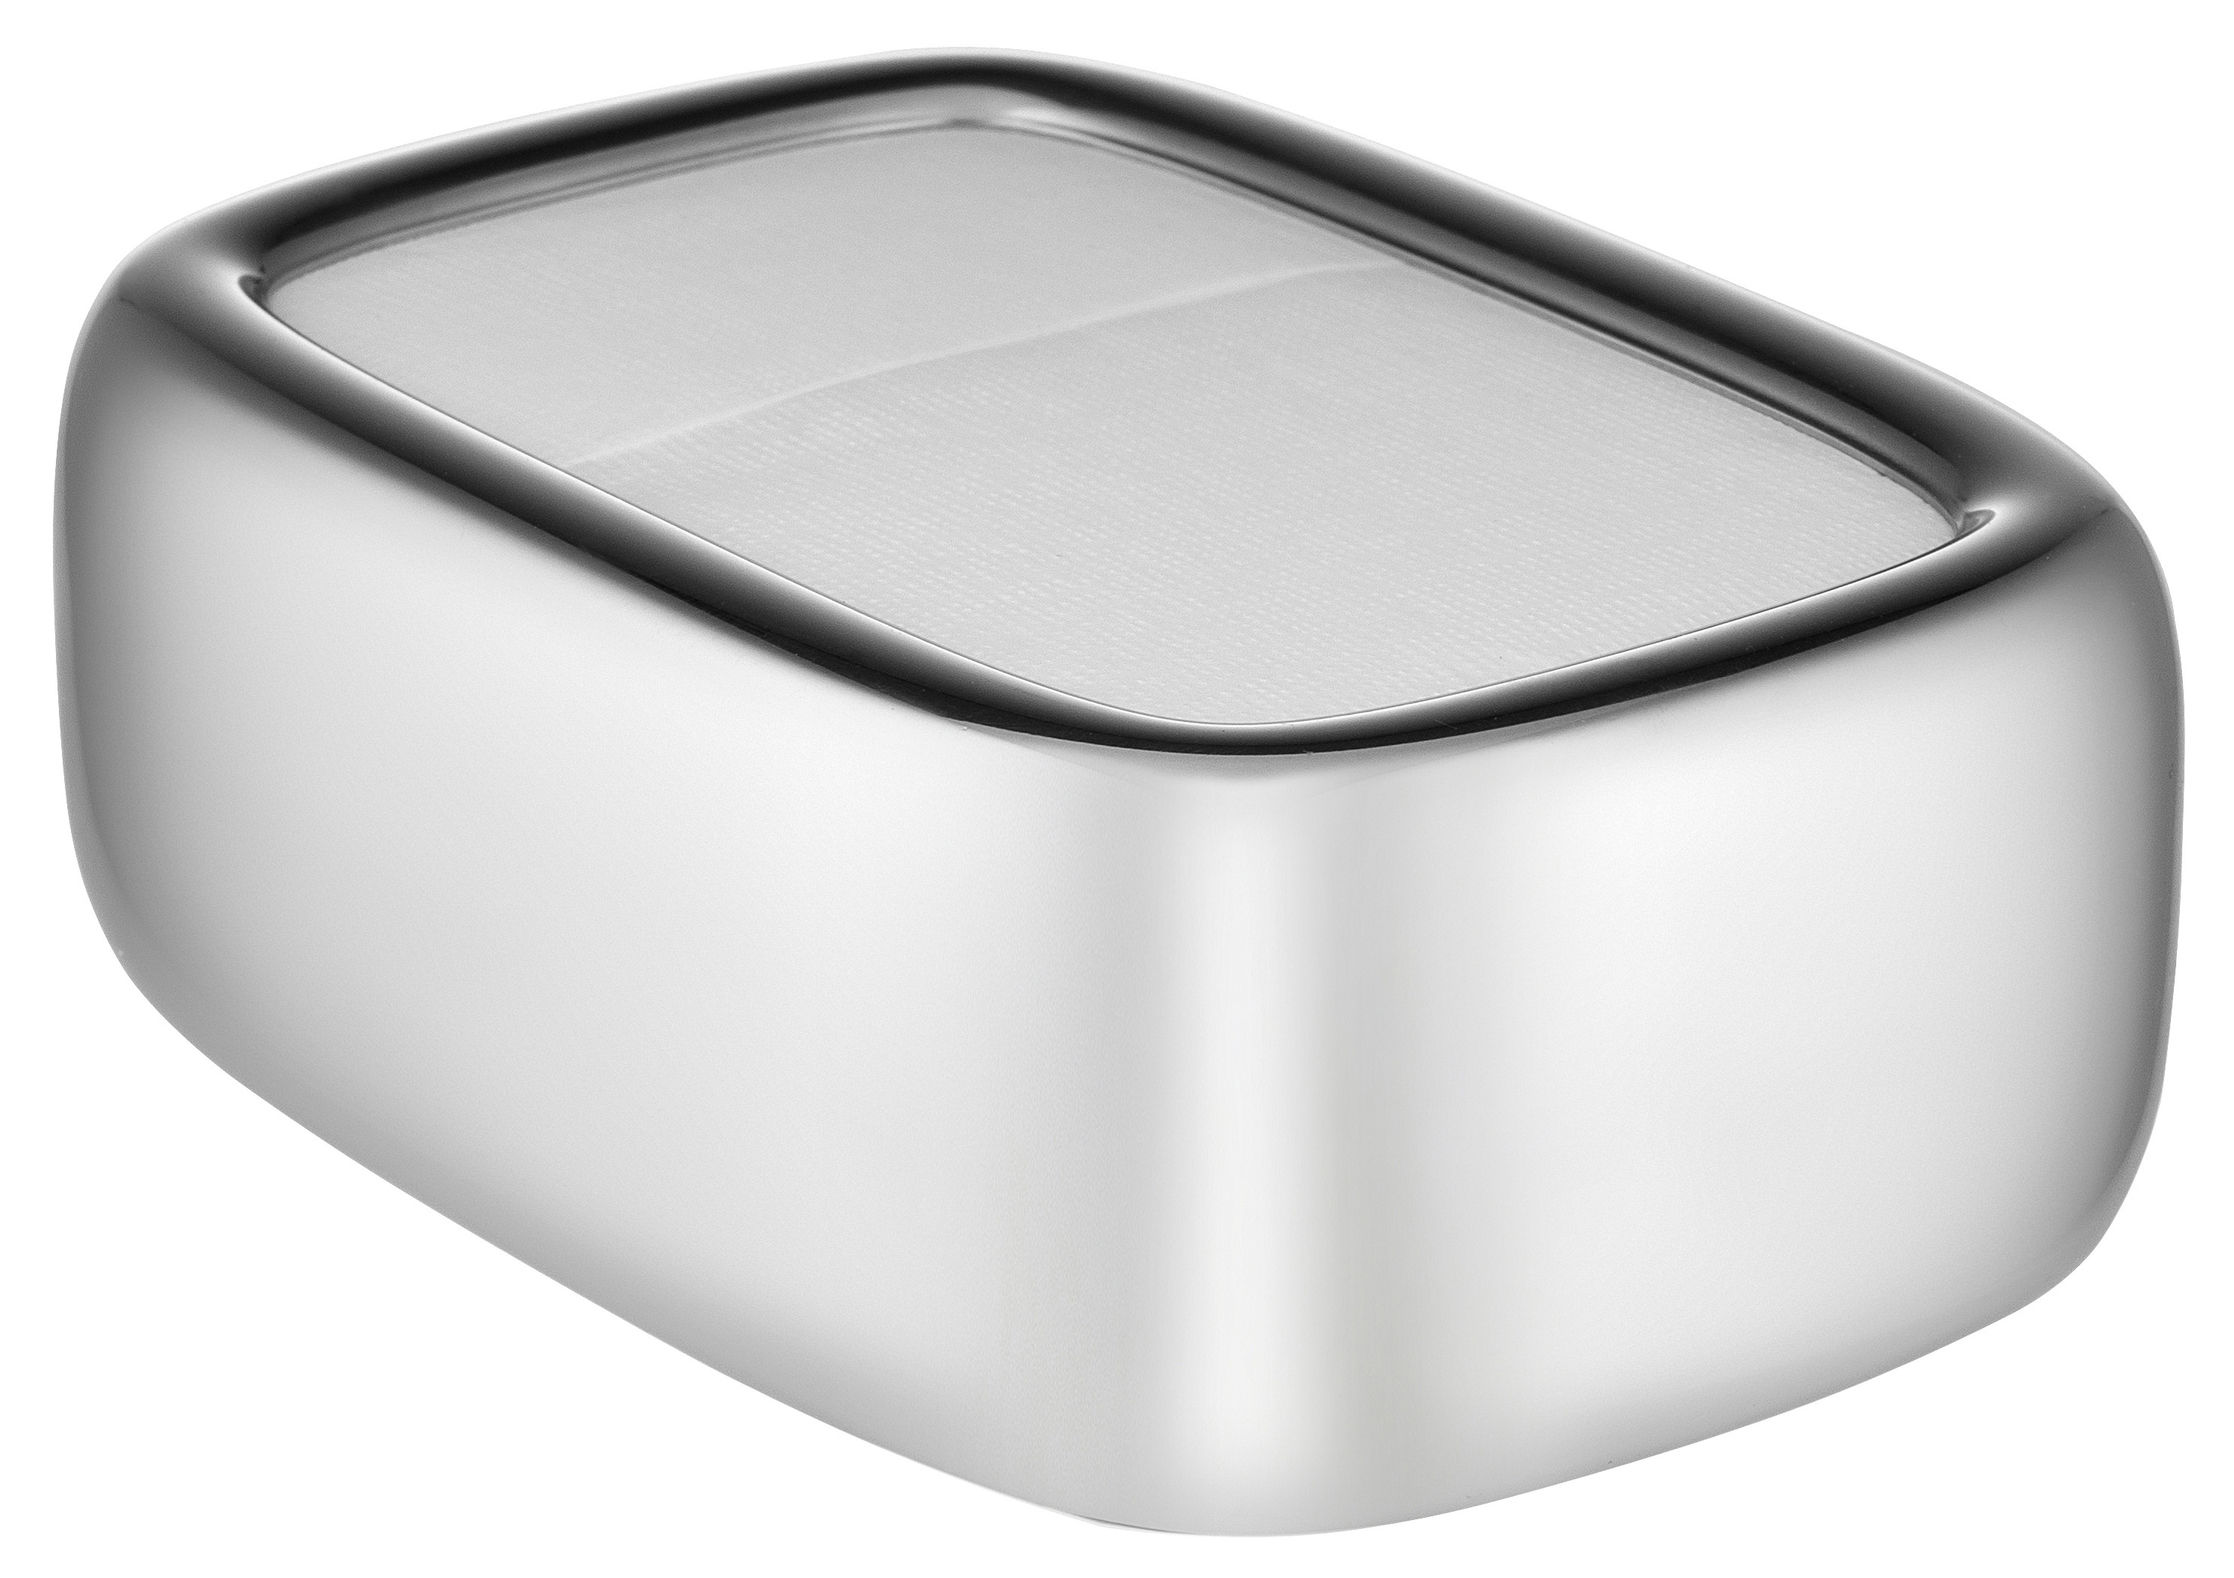 Tableware - Napkins & Tablecloths - Bibo Napkin holder - / L 15 x H 6 cm by Alessi - Steel - Stainless steel 18/10